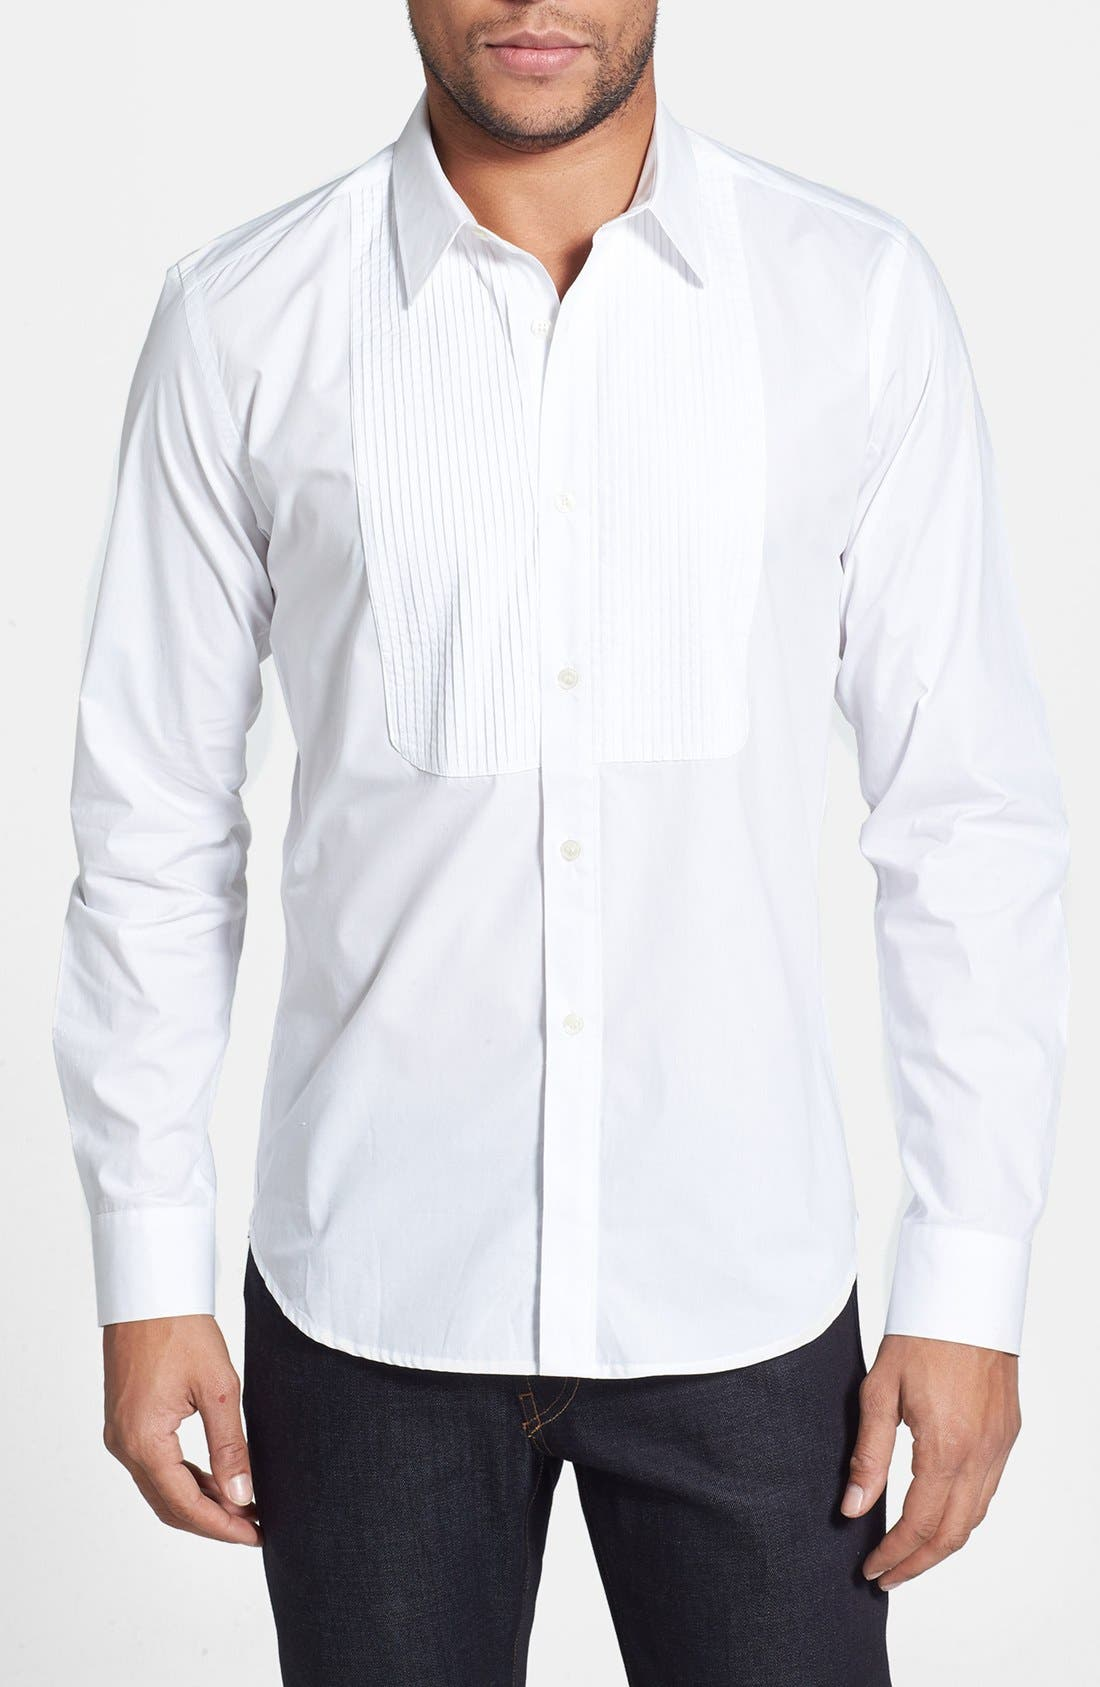 Alternate Image 1 Selected - French Connection 'Wassail' Poplin Tuxedo Shirt